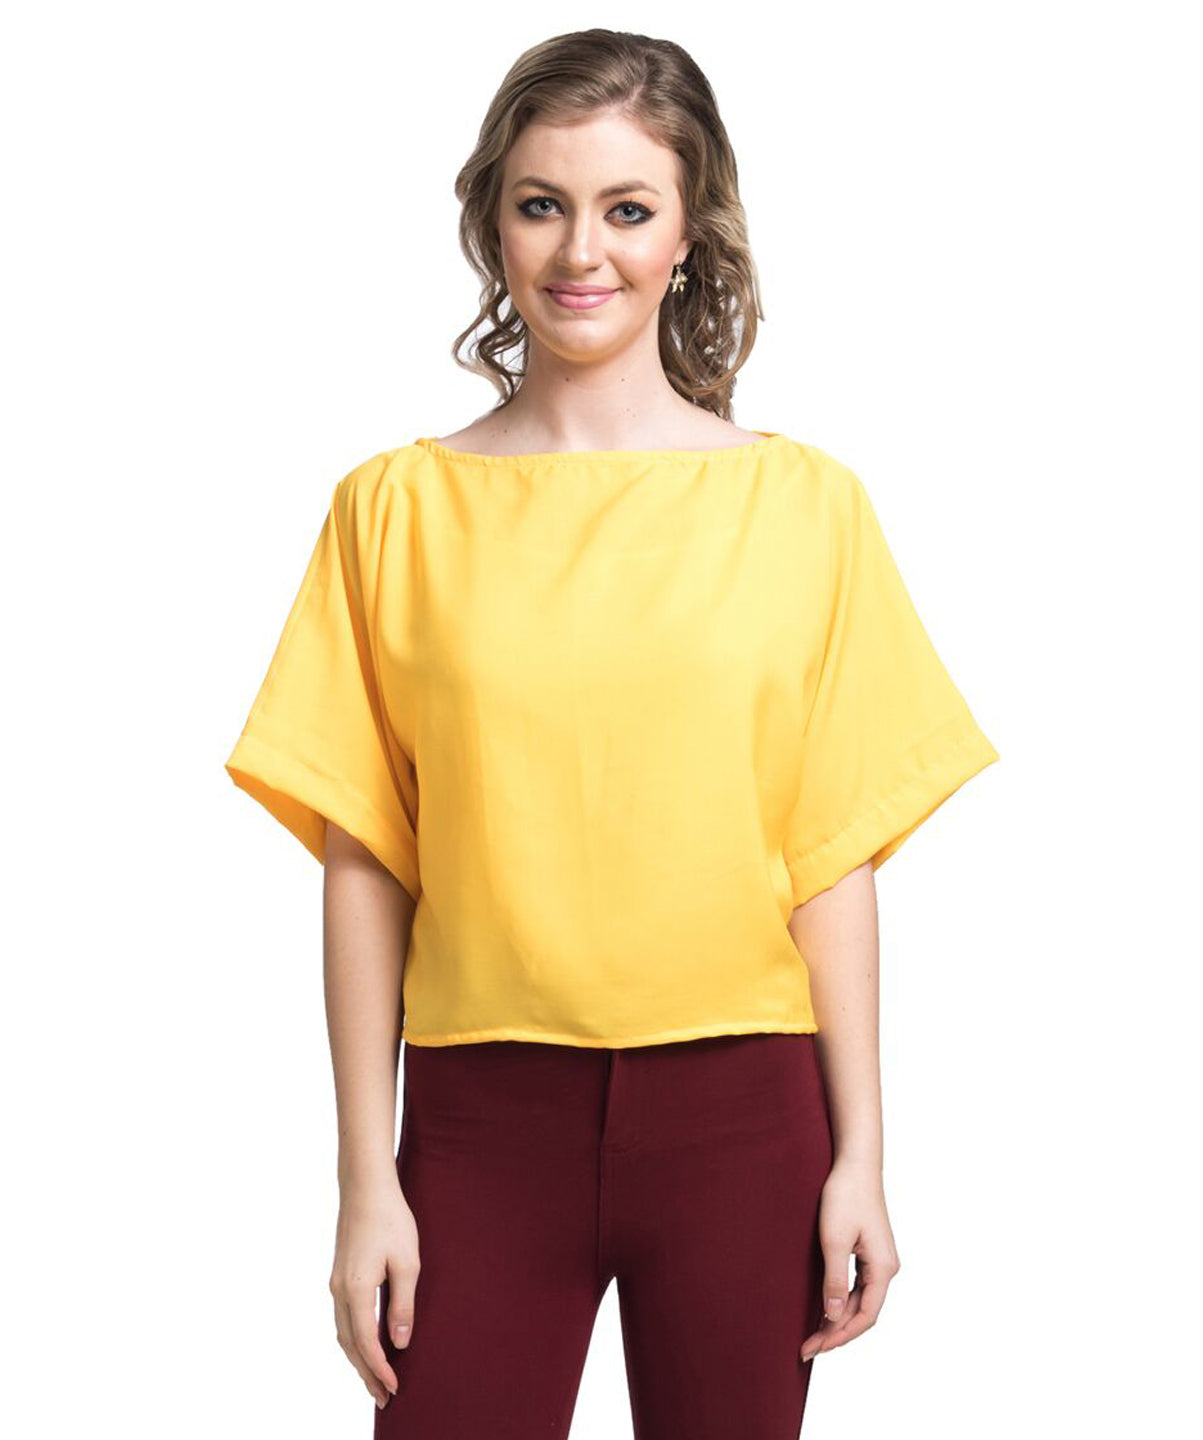 Uptownie Plus Solid Yellow Boxy Top - Uptownie